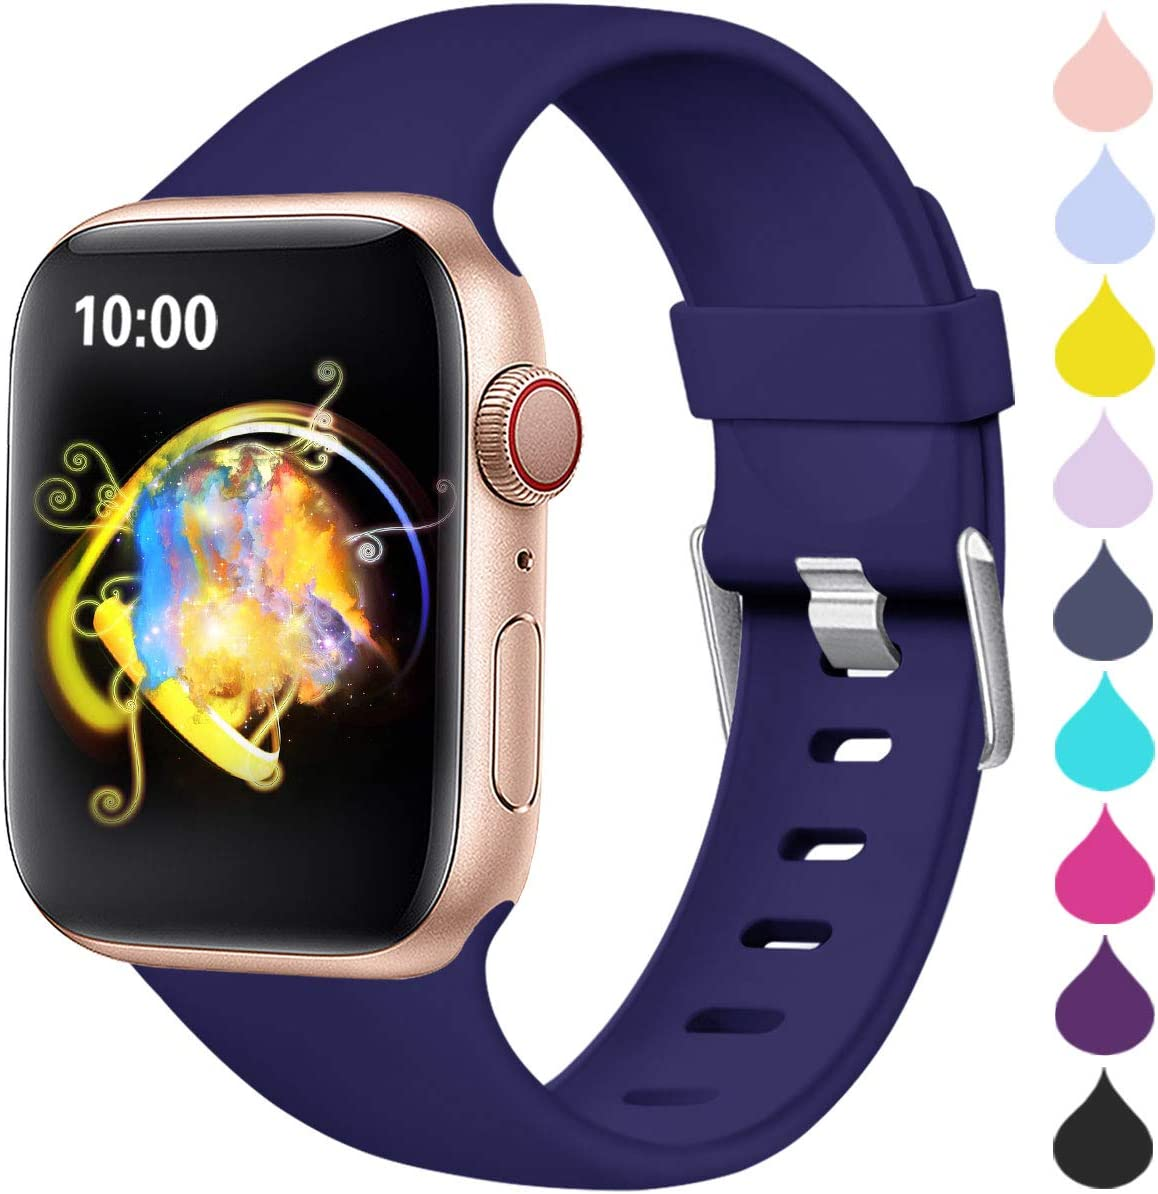 Haveda Sport Compatible for Apple Watch Band Series 6 Series 5 4 40mm, iWatch Bands 38mm Womens for Apple Watch SE, iwatch Series 3 2 1 Men, Waterproof Band for Apple Watch 5, Navy 38mm/40mm S/M